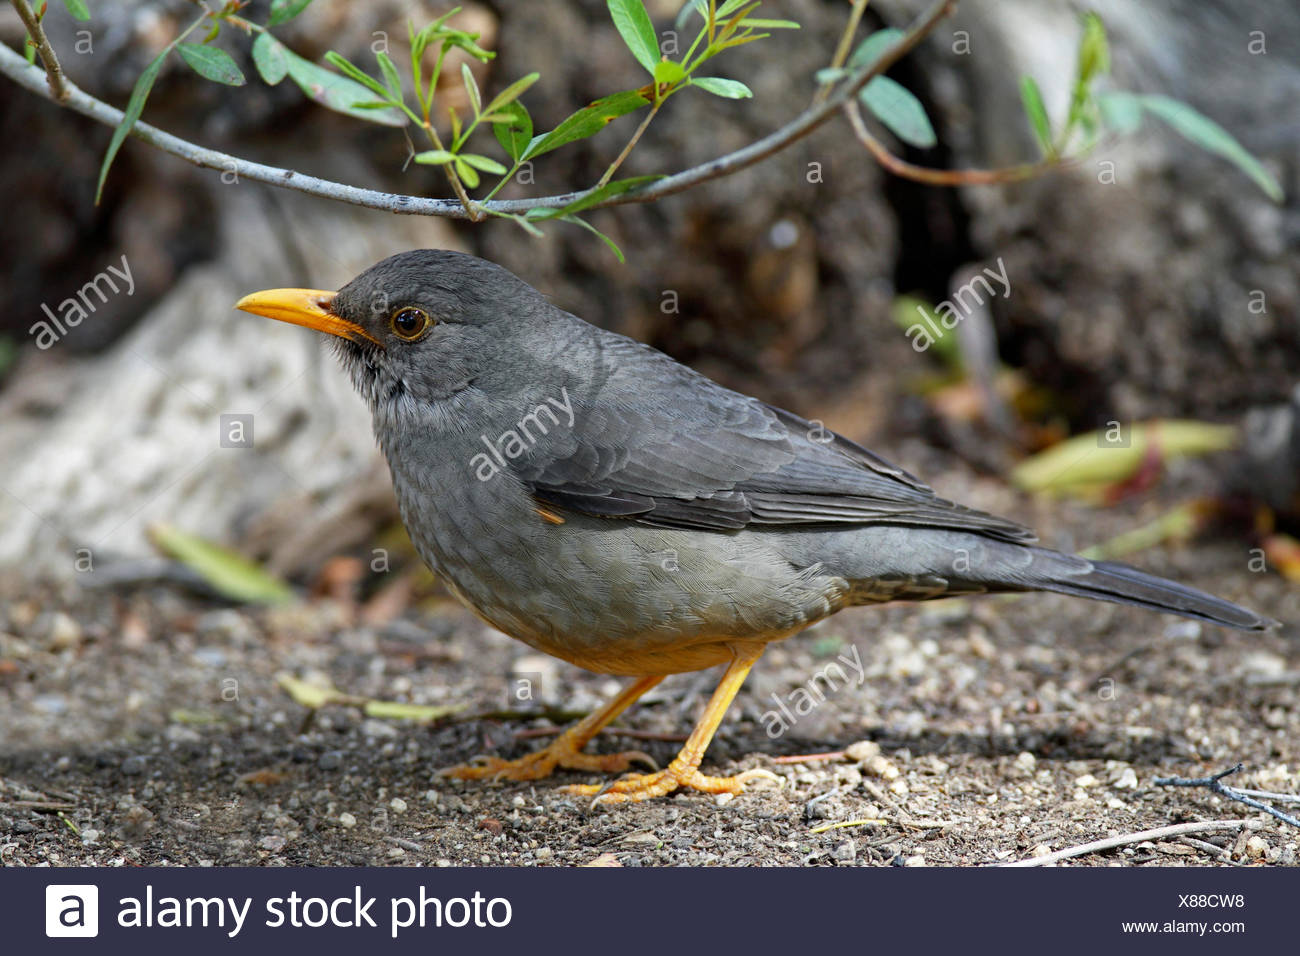 Olive thrush (Turdus olivaceus), standing on the ground, South Africa, Augrabies Falls National Park Stock Photo